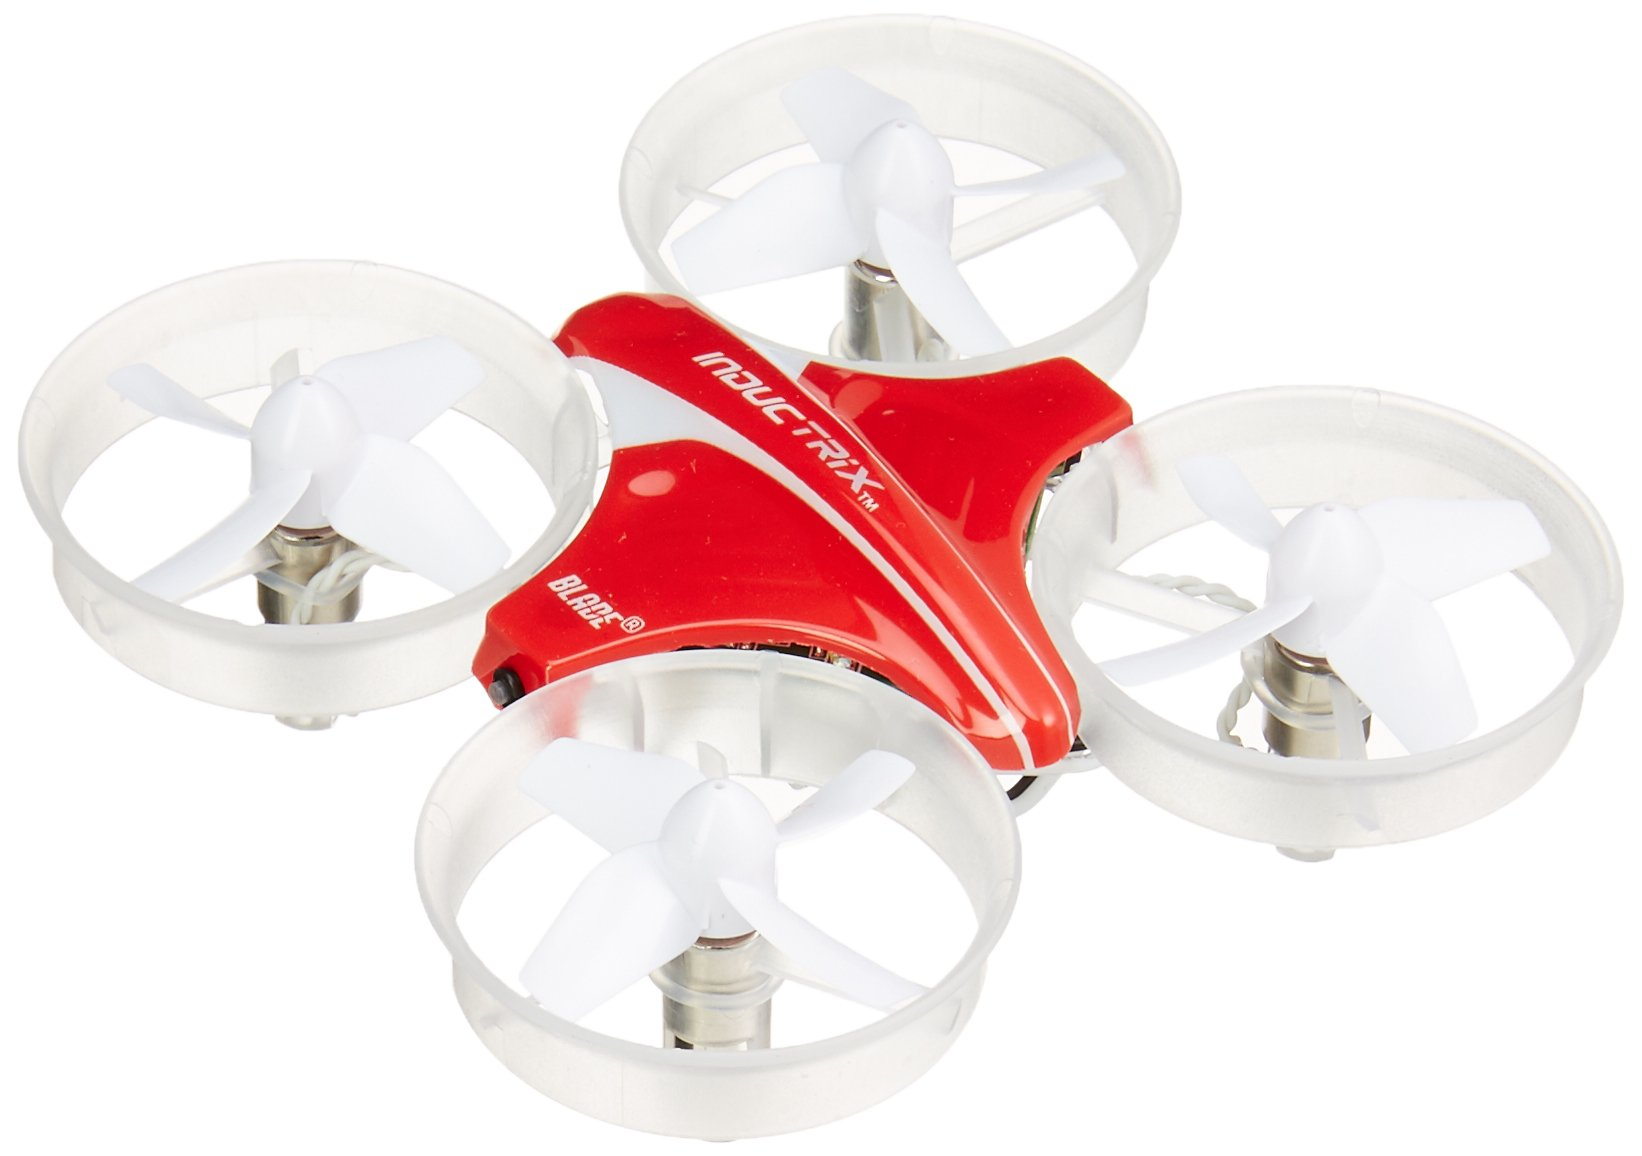 Blade Inductrix Ultra Micro RC Drone BNF with Safe Technology and Self-Leveling (Includes Battery and Charger, Transmitter Sold Separately): BLH8780